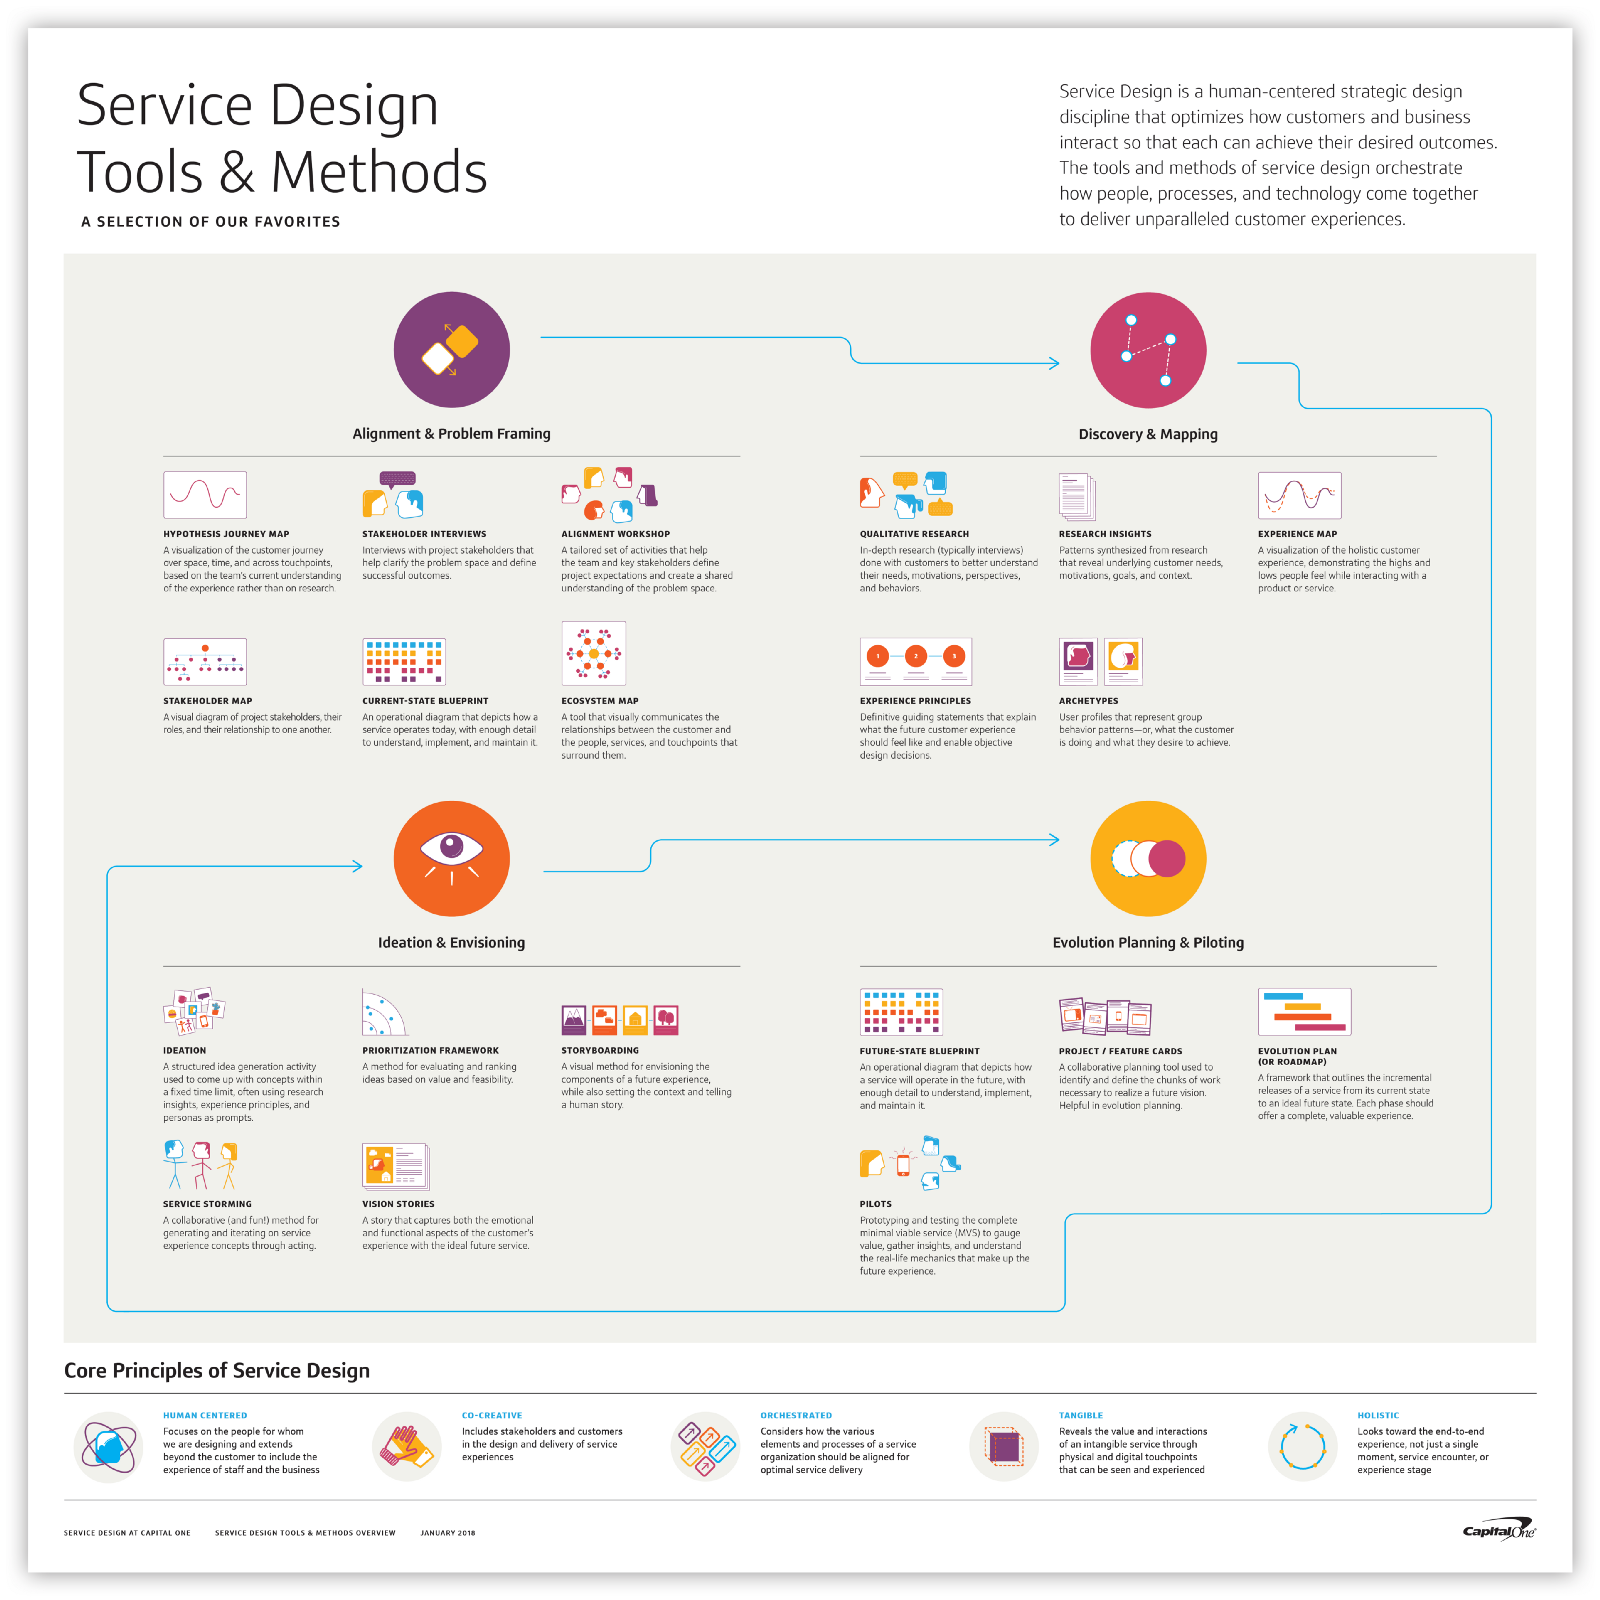 Service design tools methods one design community medium download the poster here or check out our mobile friendly version here malvernweather